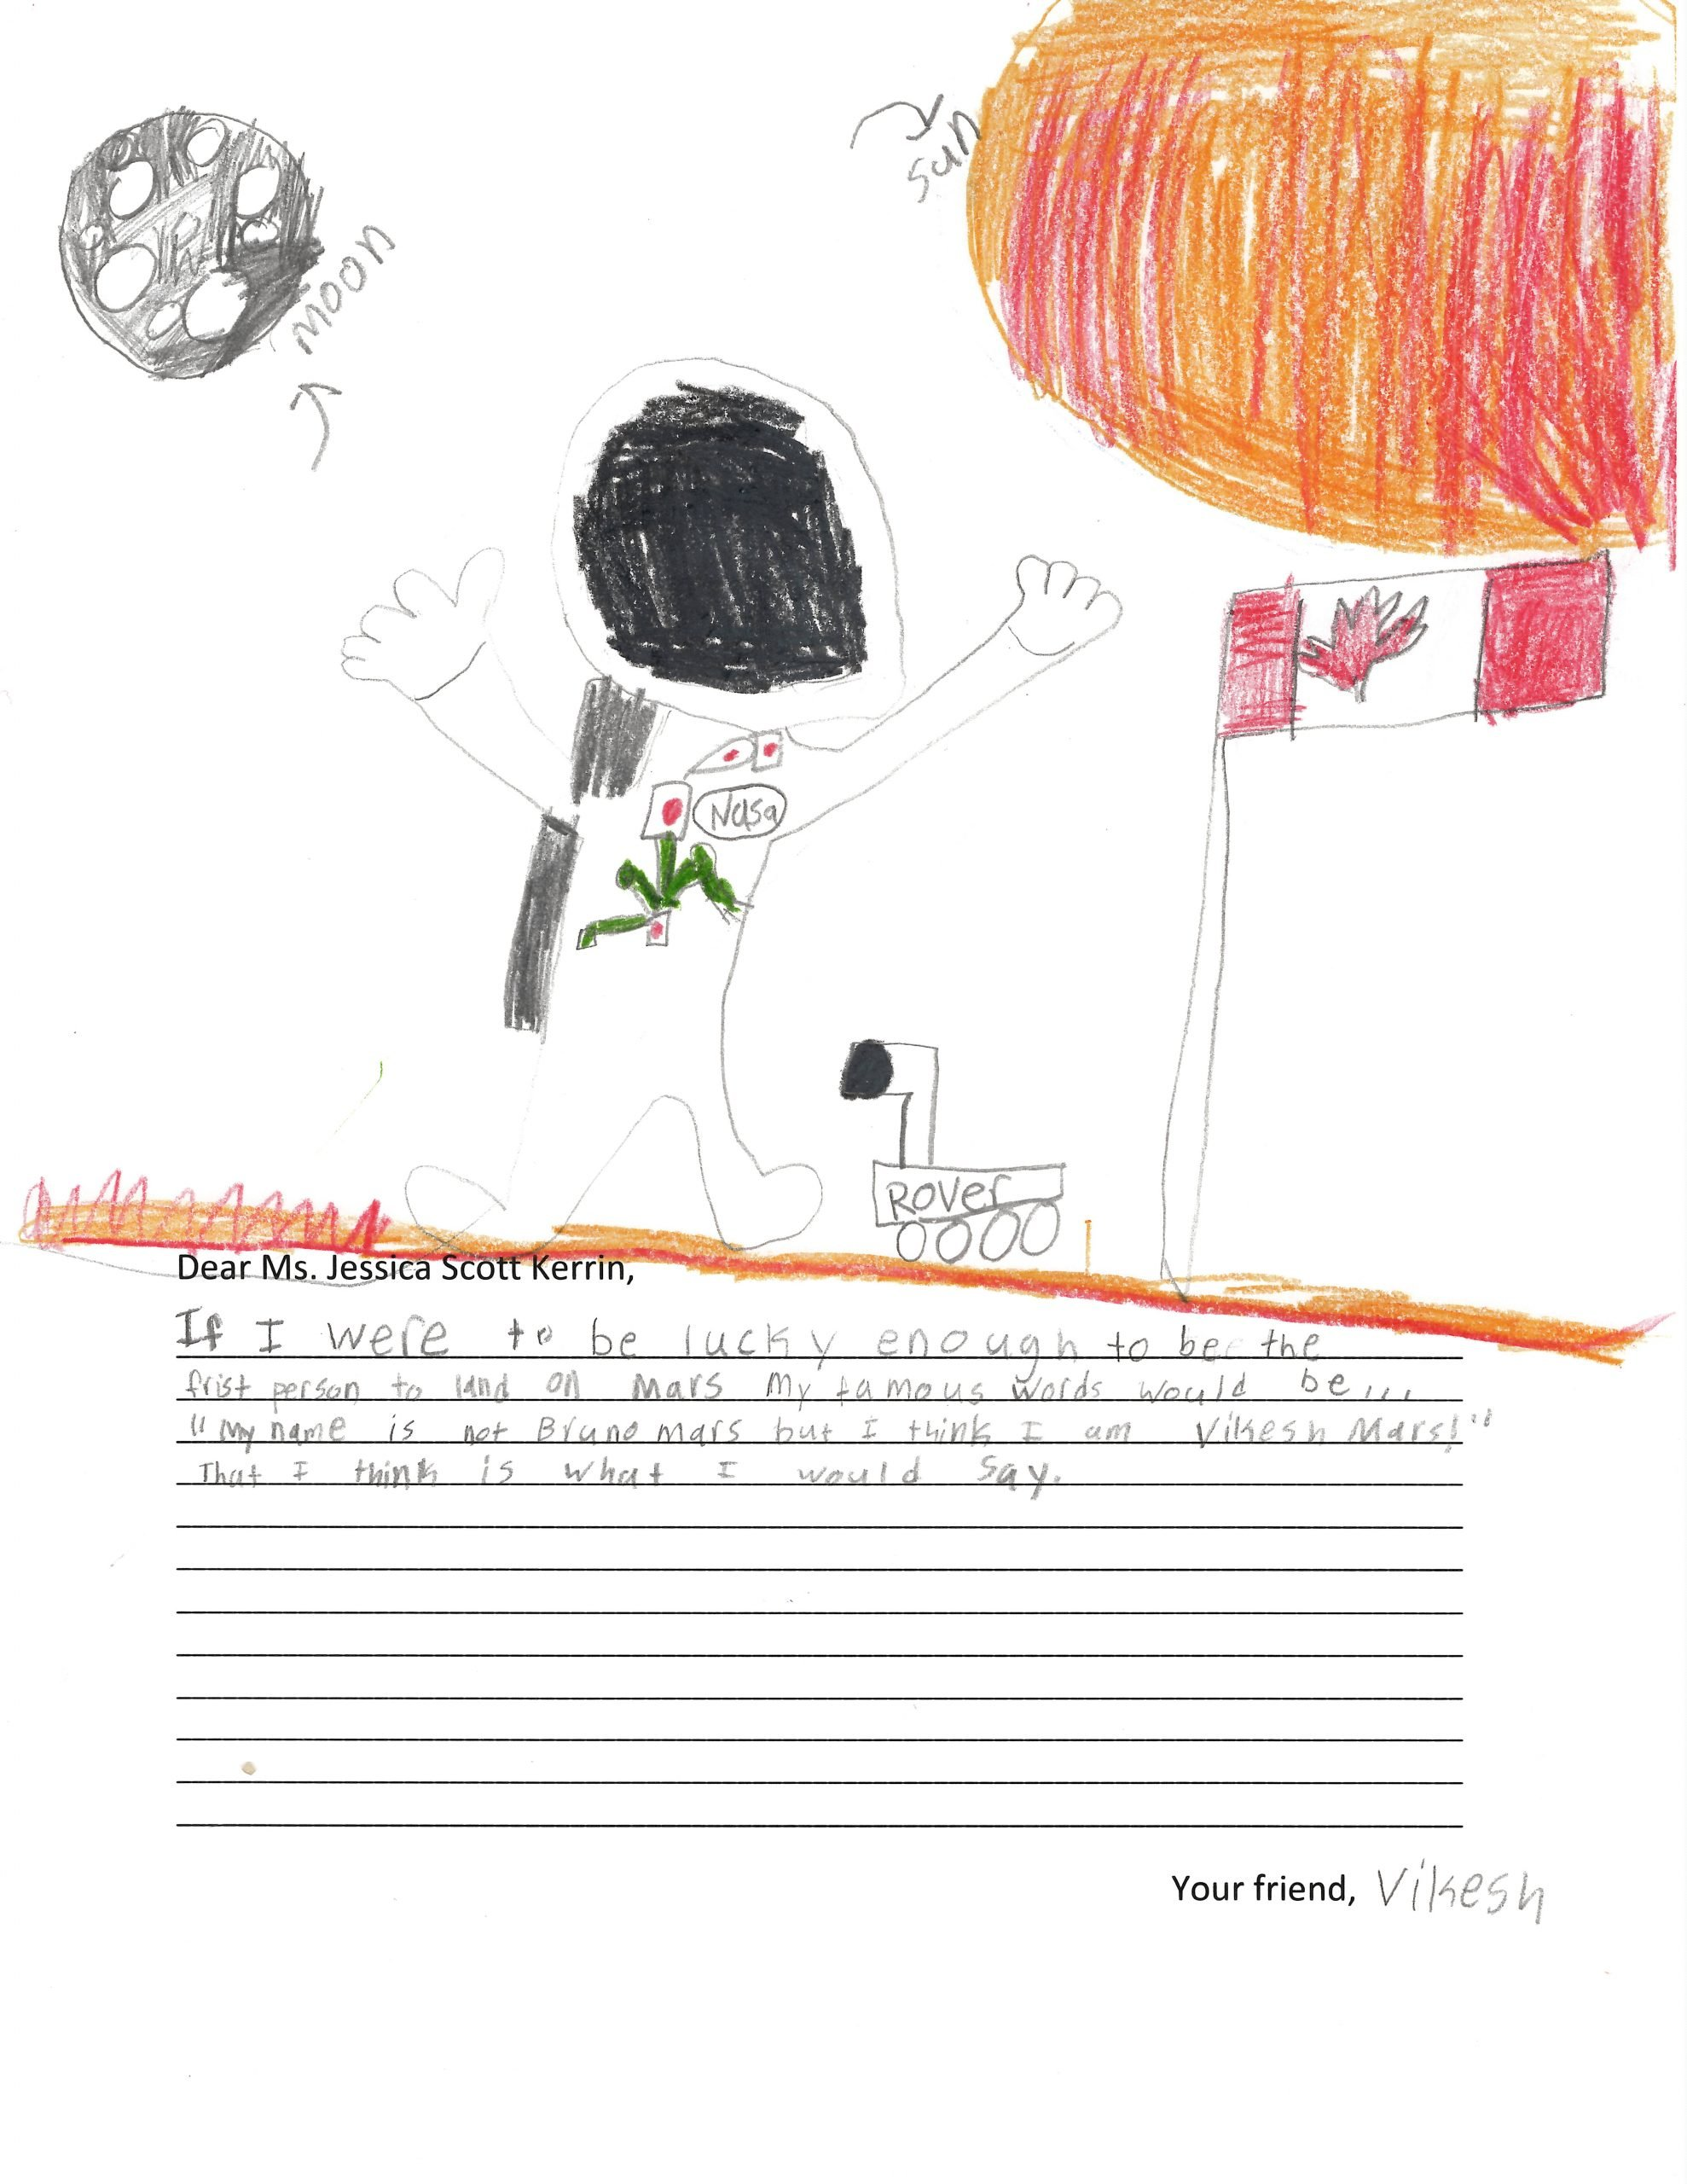 Child's self-portrait as an astronaut on Mars